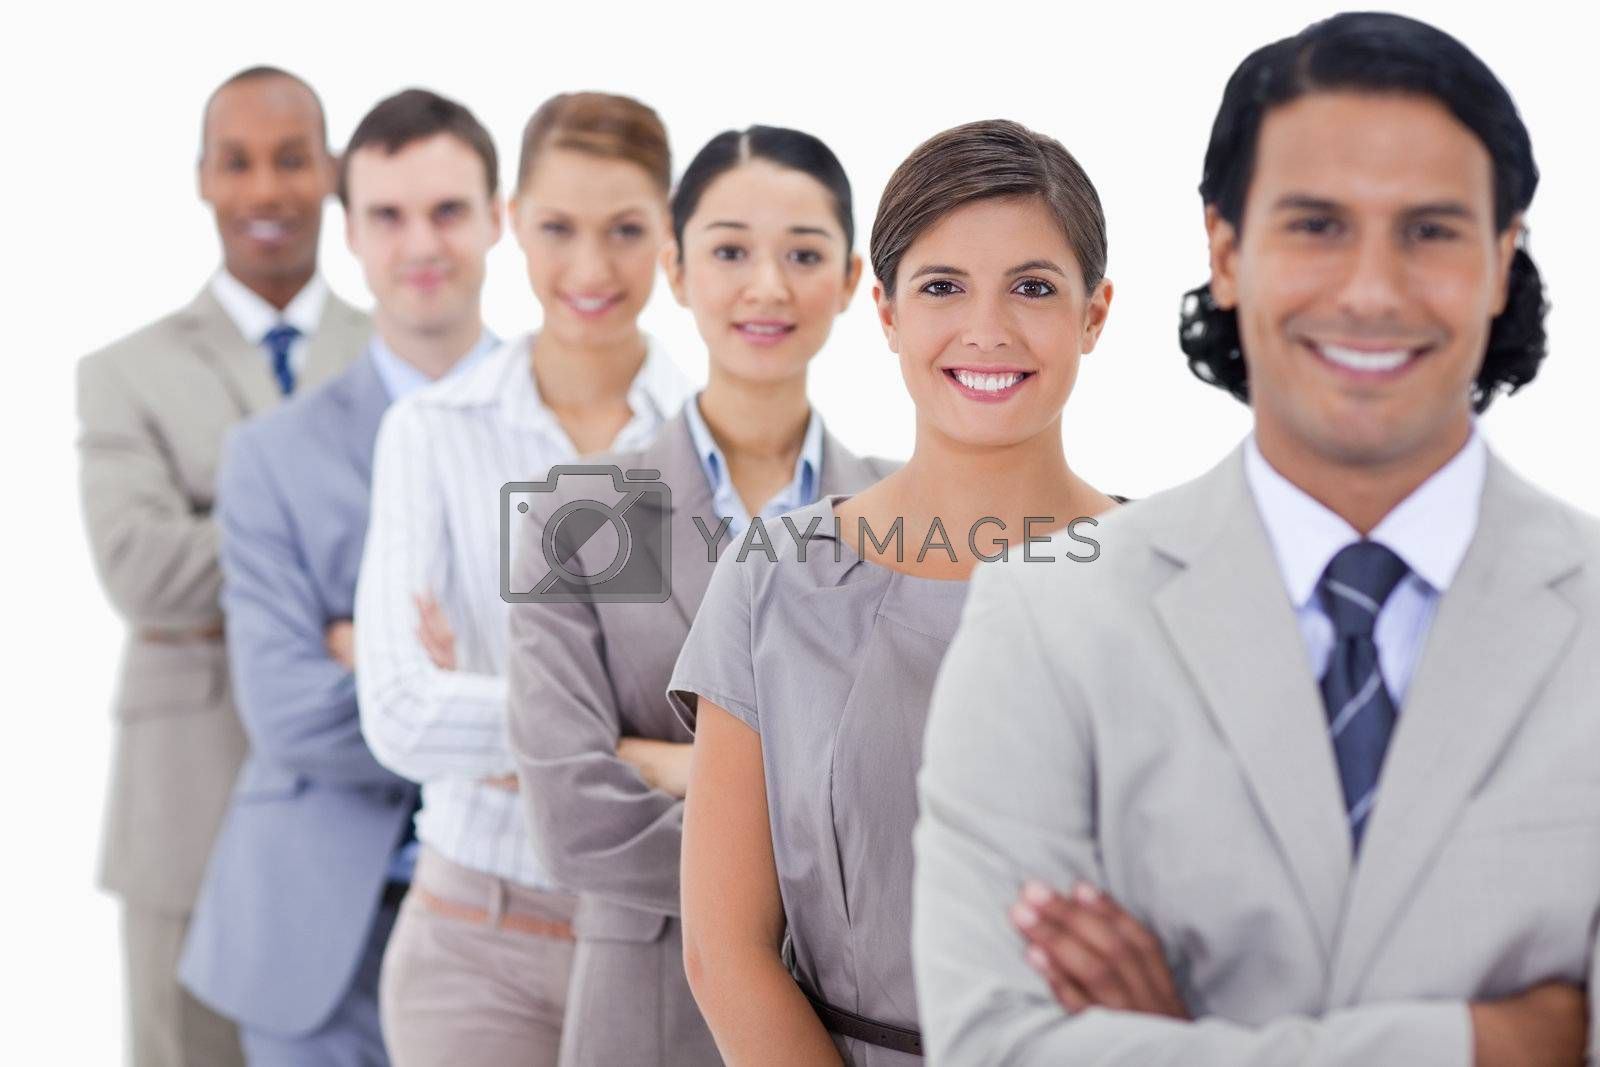 Big close-up of happy colleagues in a single line with focus on the first woman